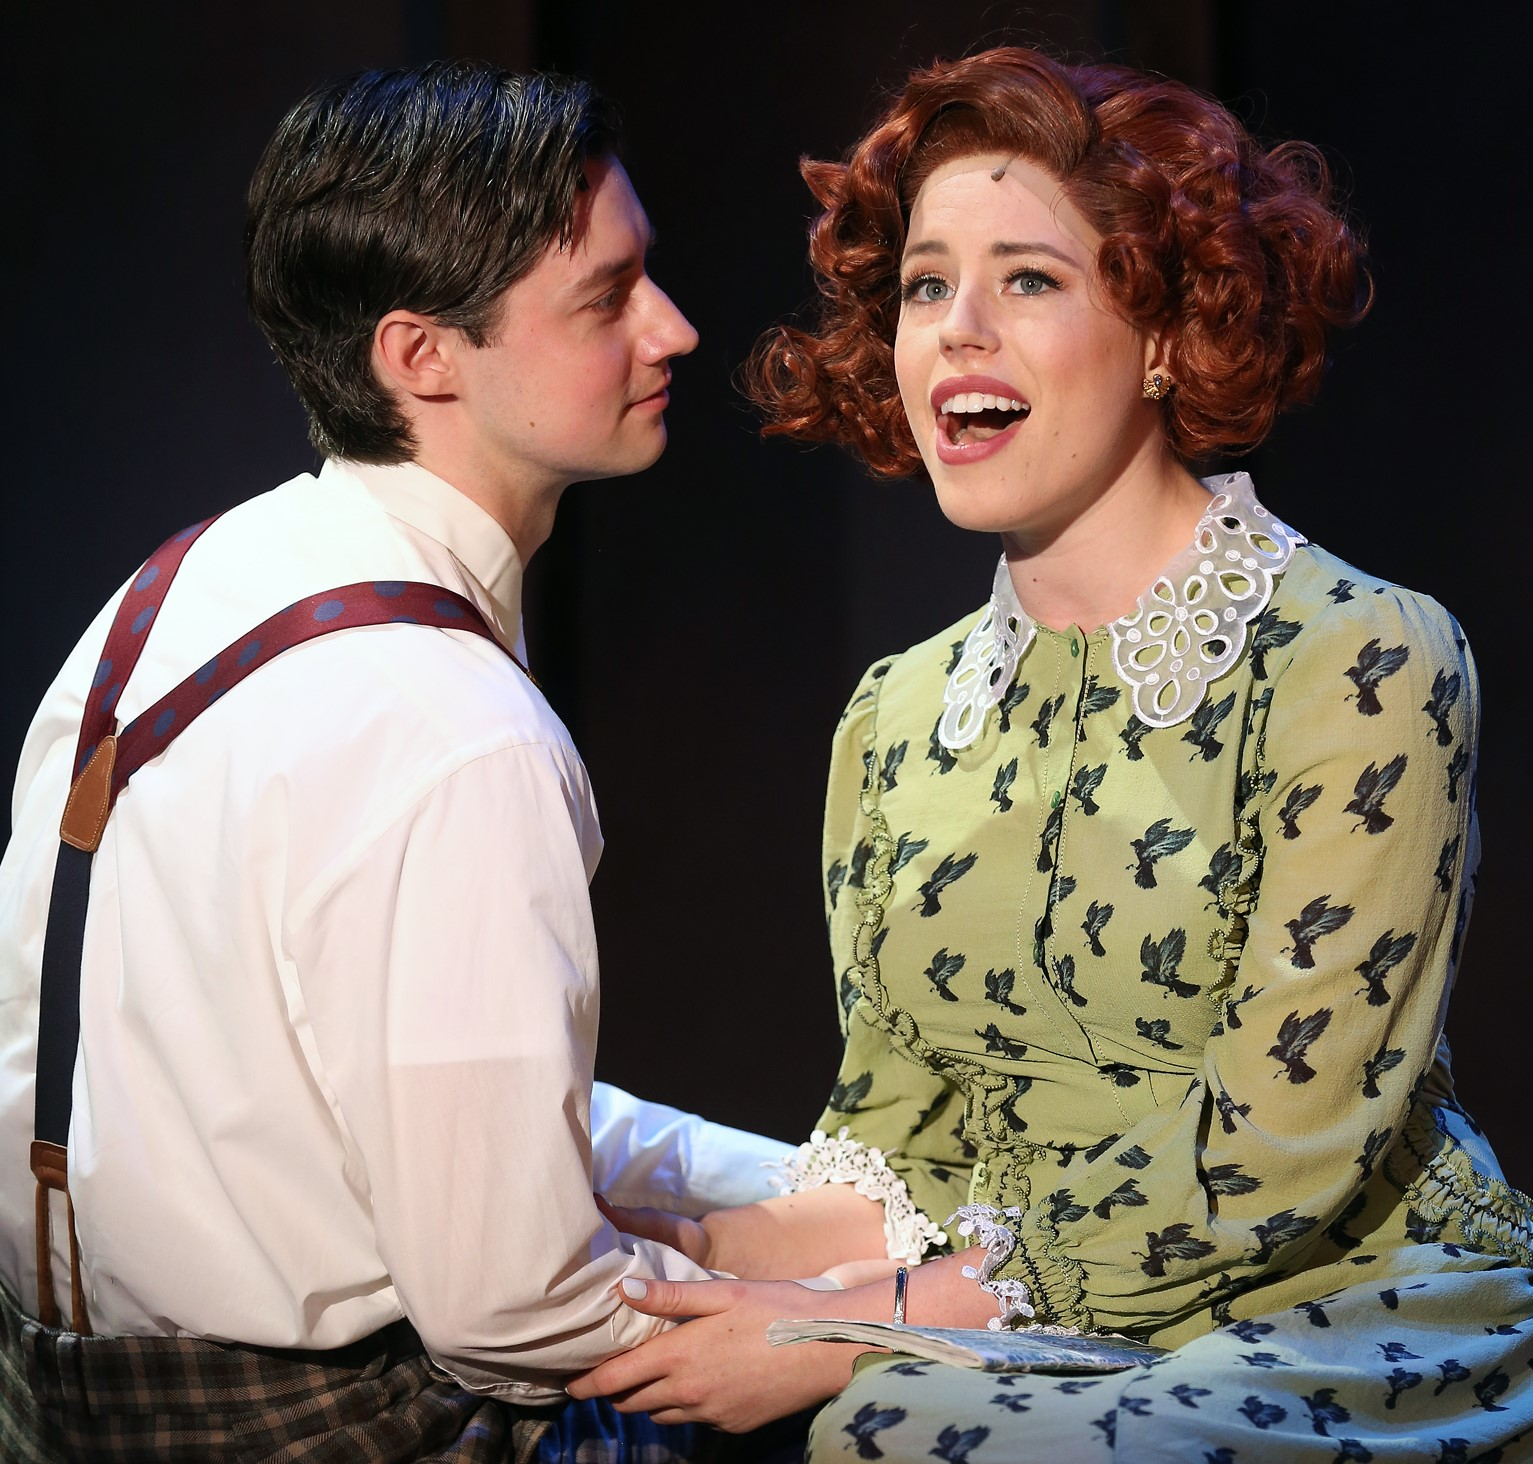 Chris Dwan as David shares a tender moment with Allie Trimm, who plays his girlfriend Wanda. Top: Dwan, surrounded by the women who adore him (from left: Farah Alvin as Angela Marlowe, Dana Costello as Miss B, and Trimm).